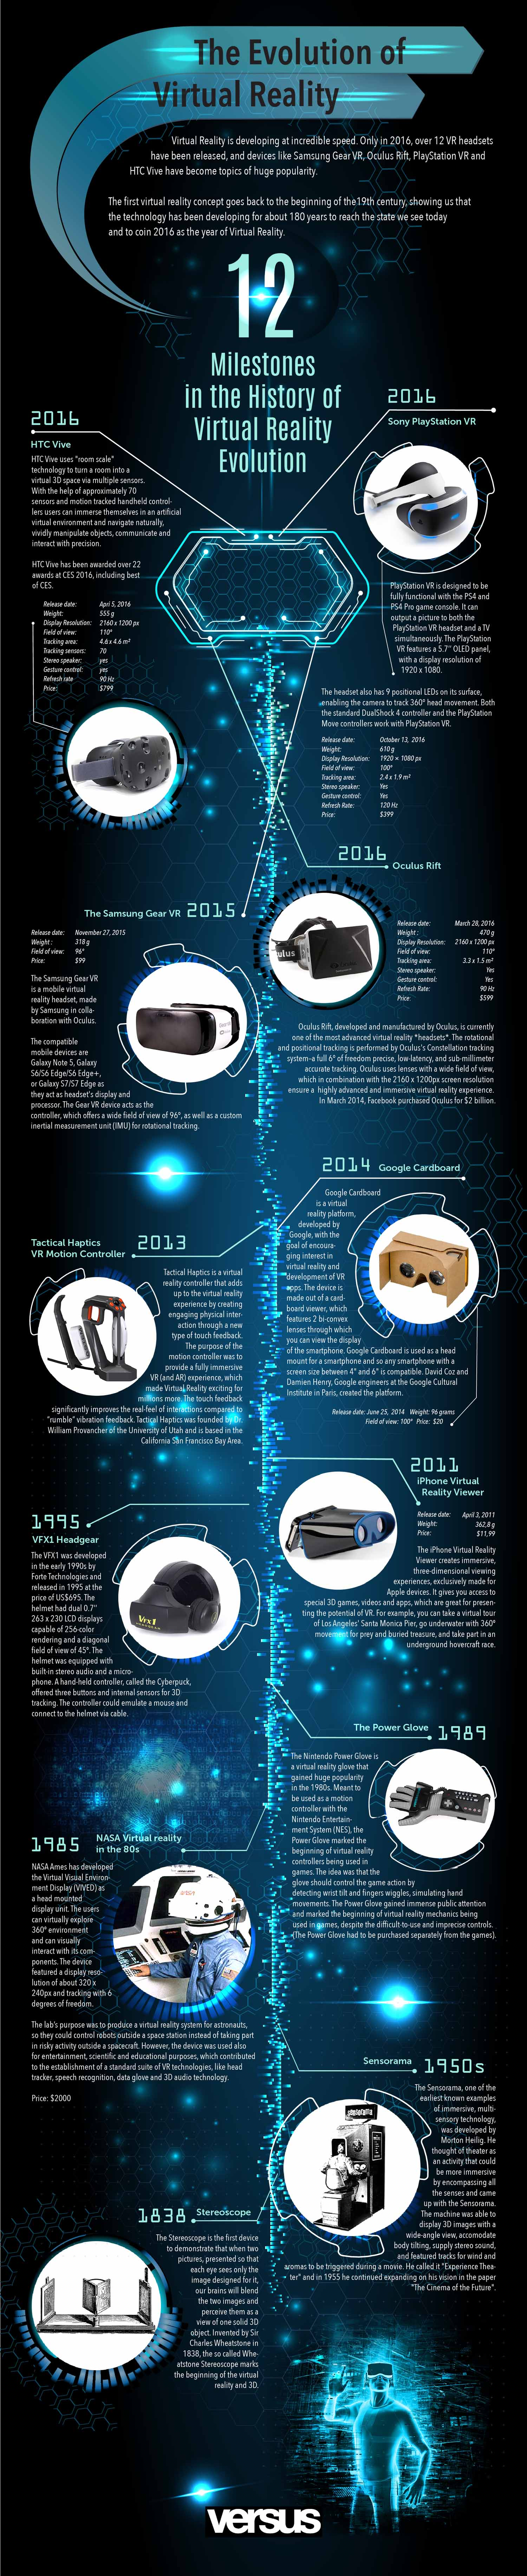 History of VR infographic